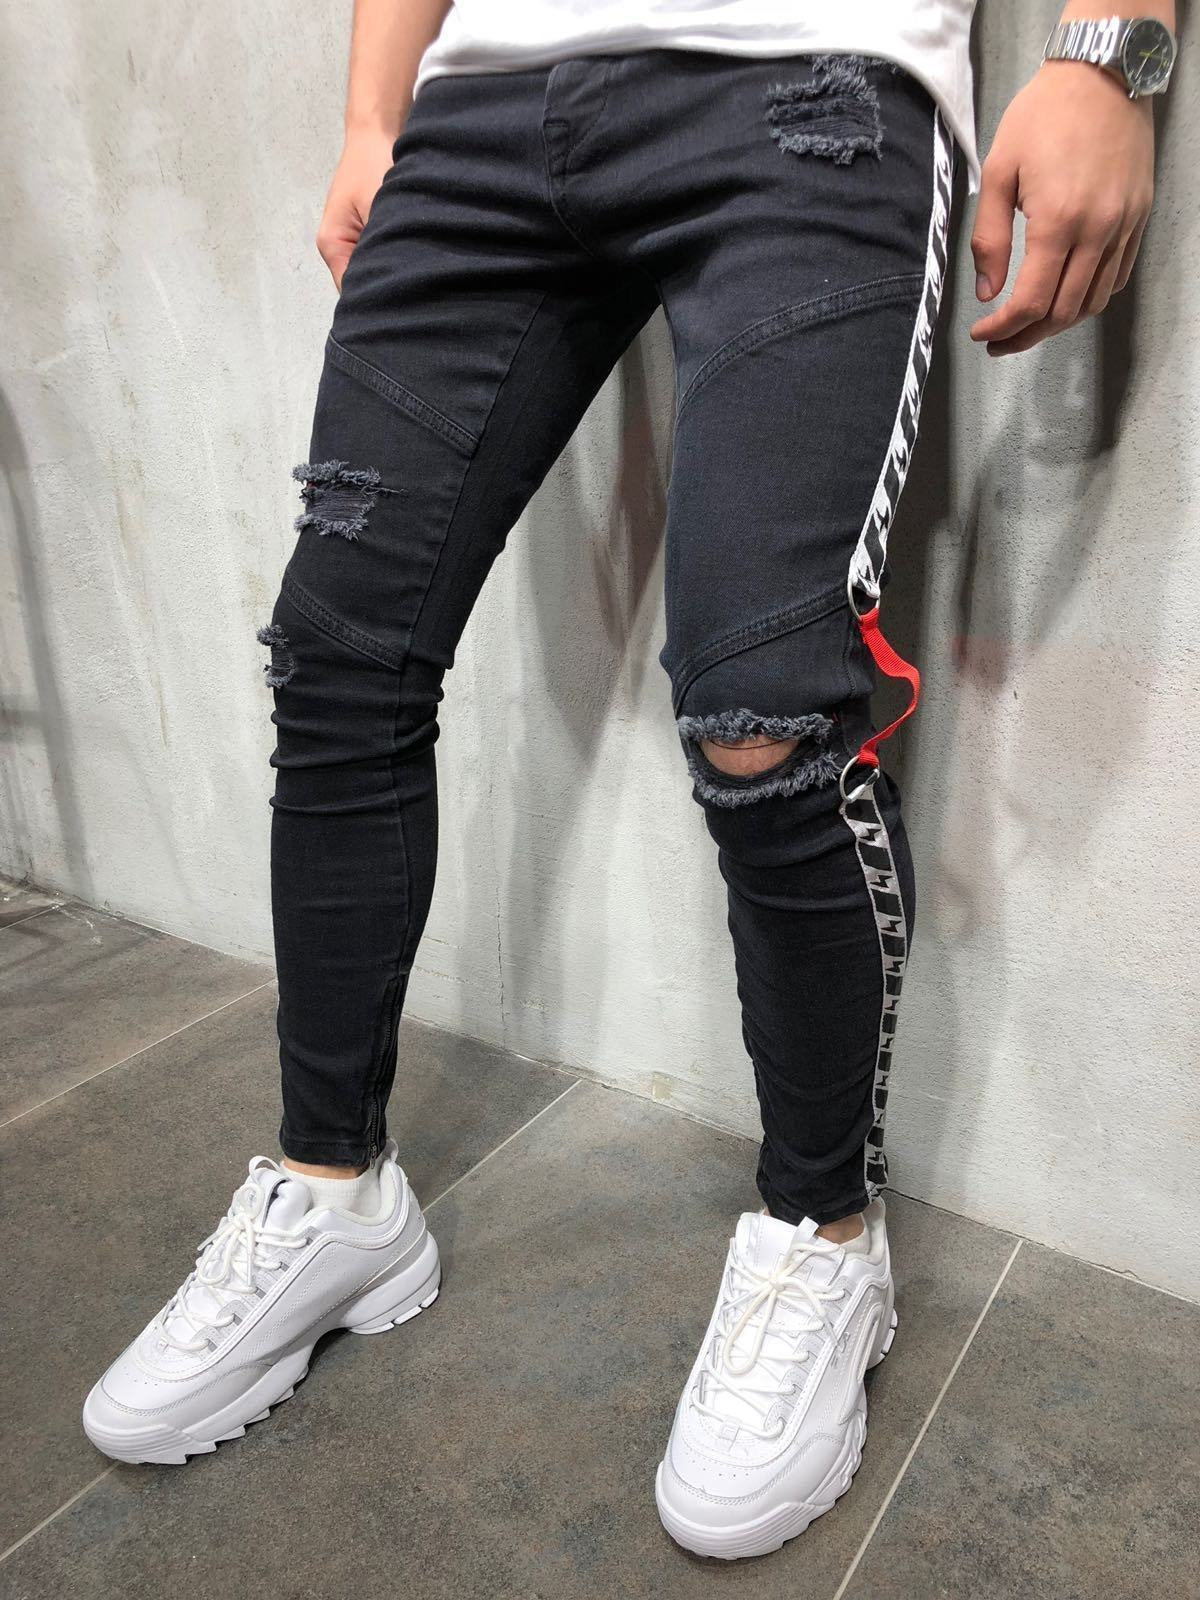 2019 Europe And America MEN'S Jeans Webbing With Holes Skinny Slim Fit Foot Mouth Zipper New Style Men'S Wear Fashion